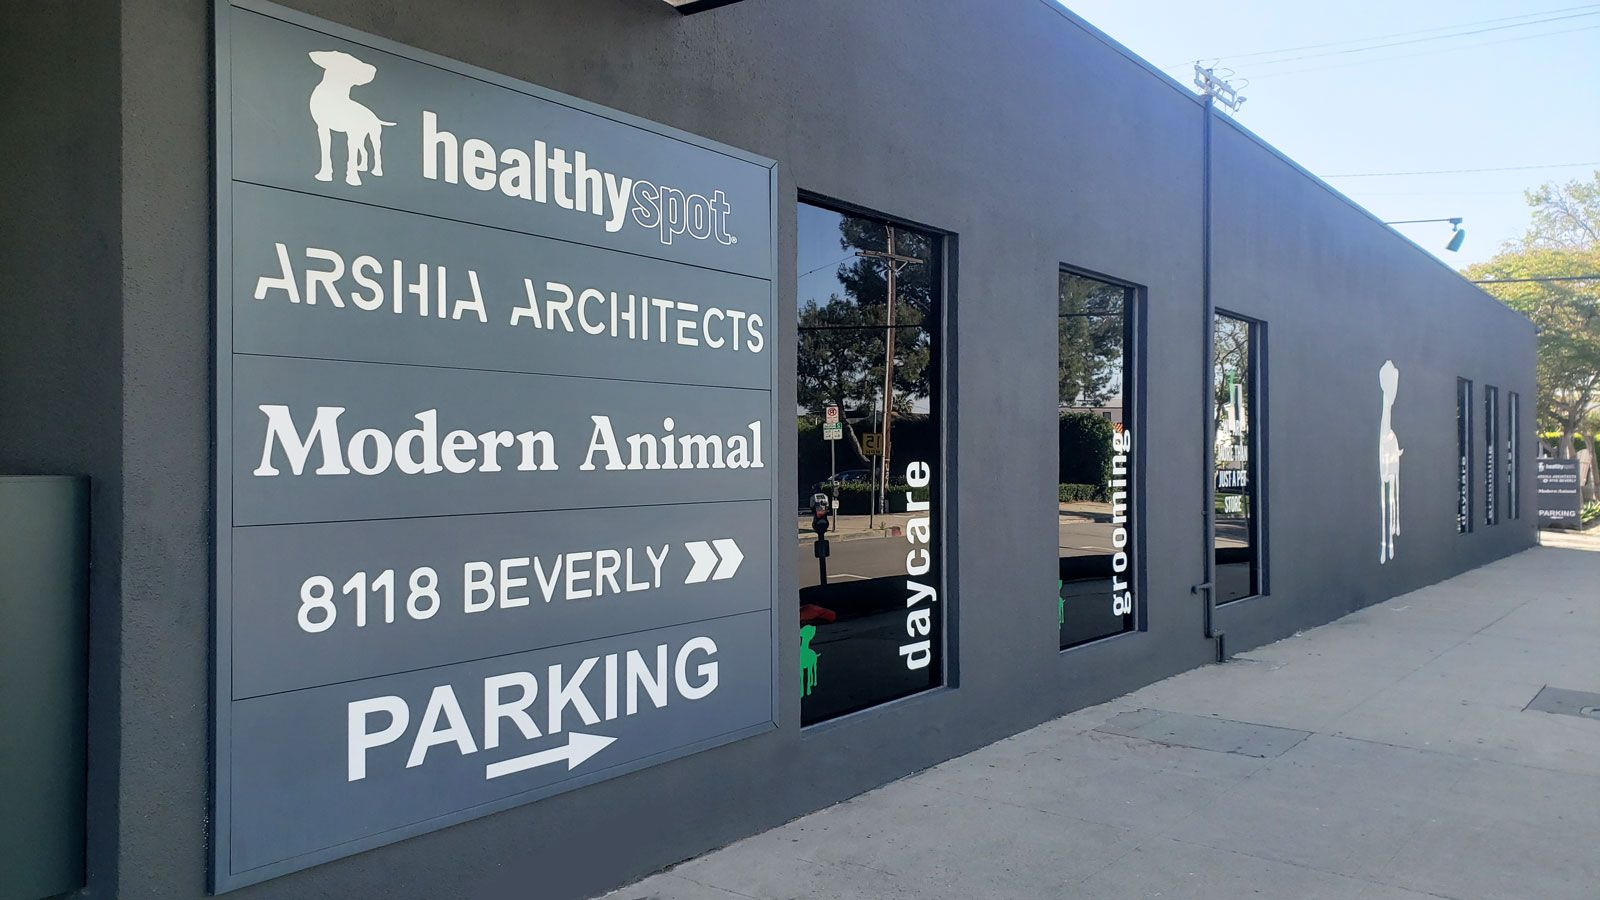 Modern Animal storefront branding with lettering and acrylic sign